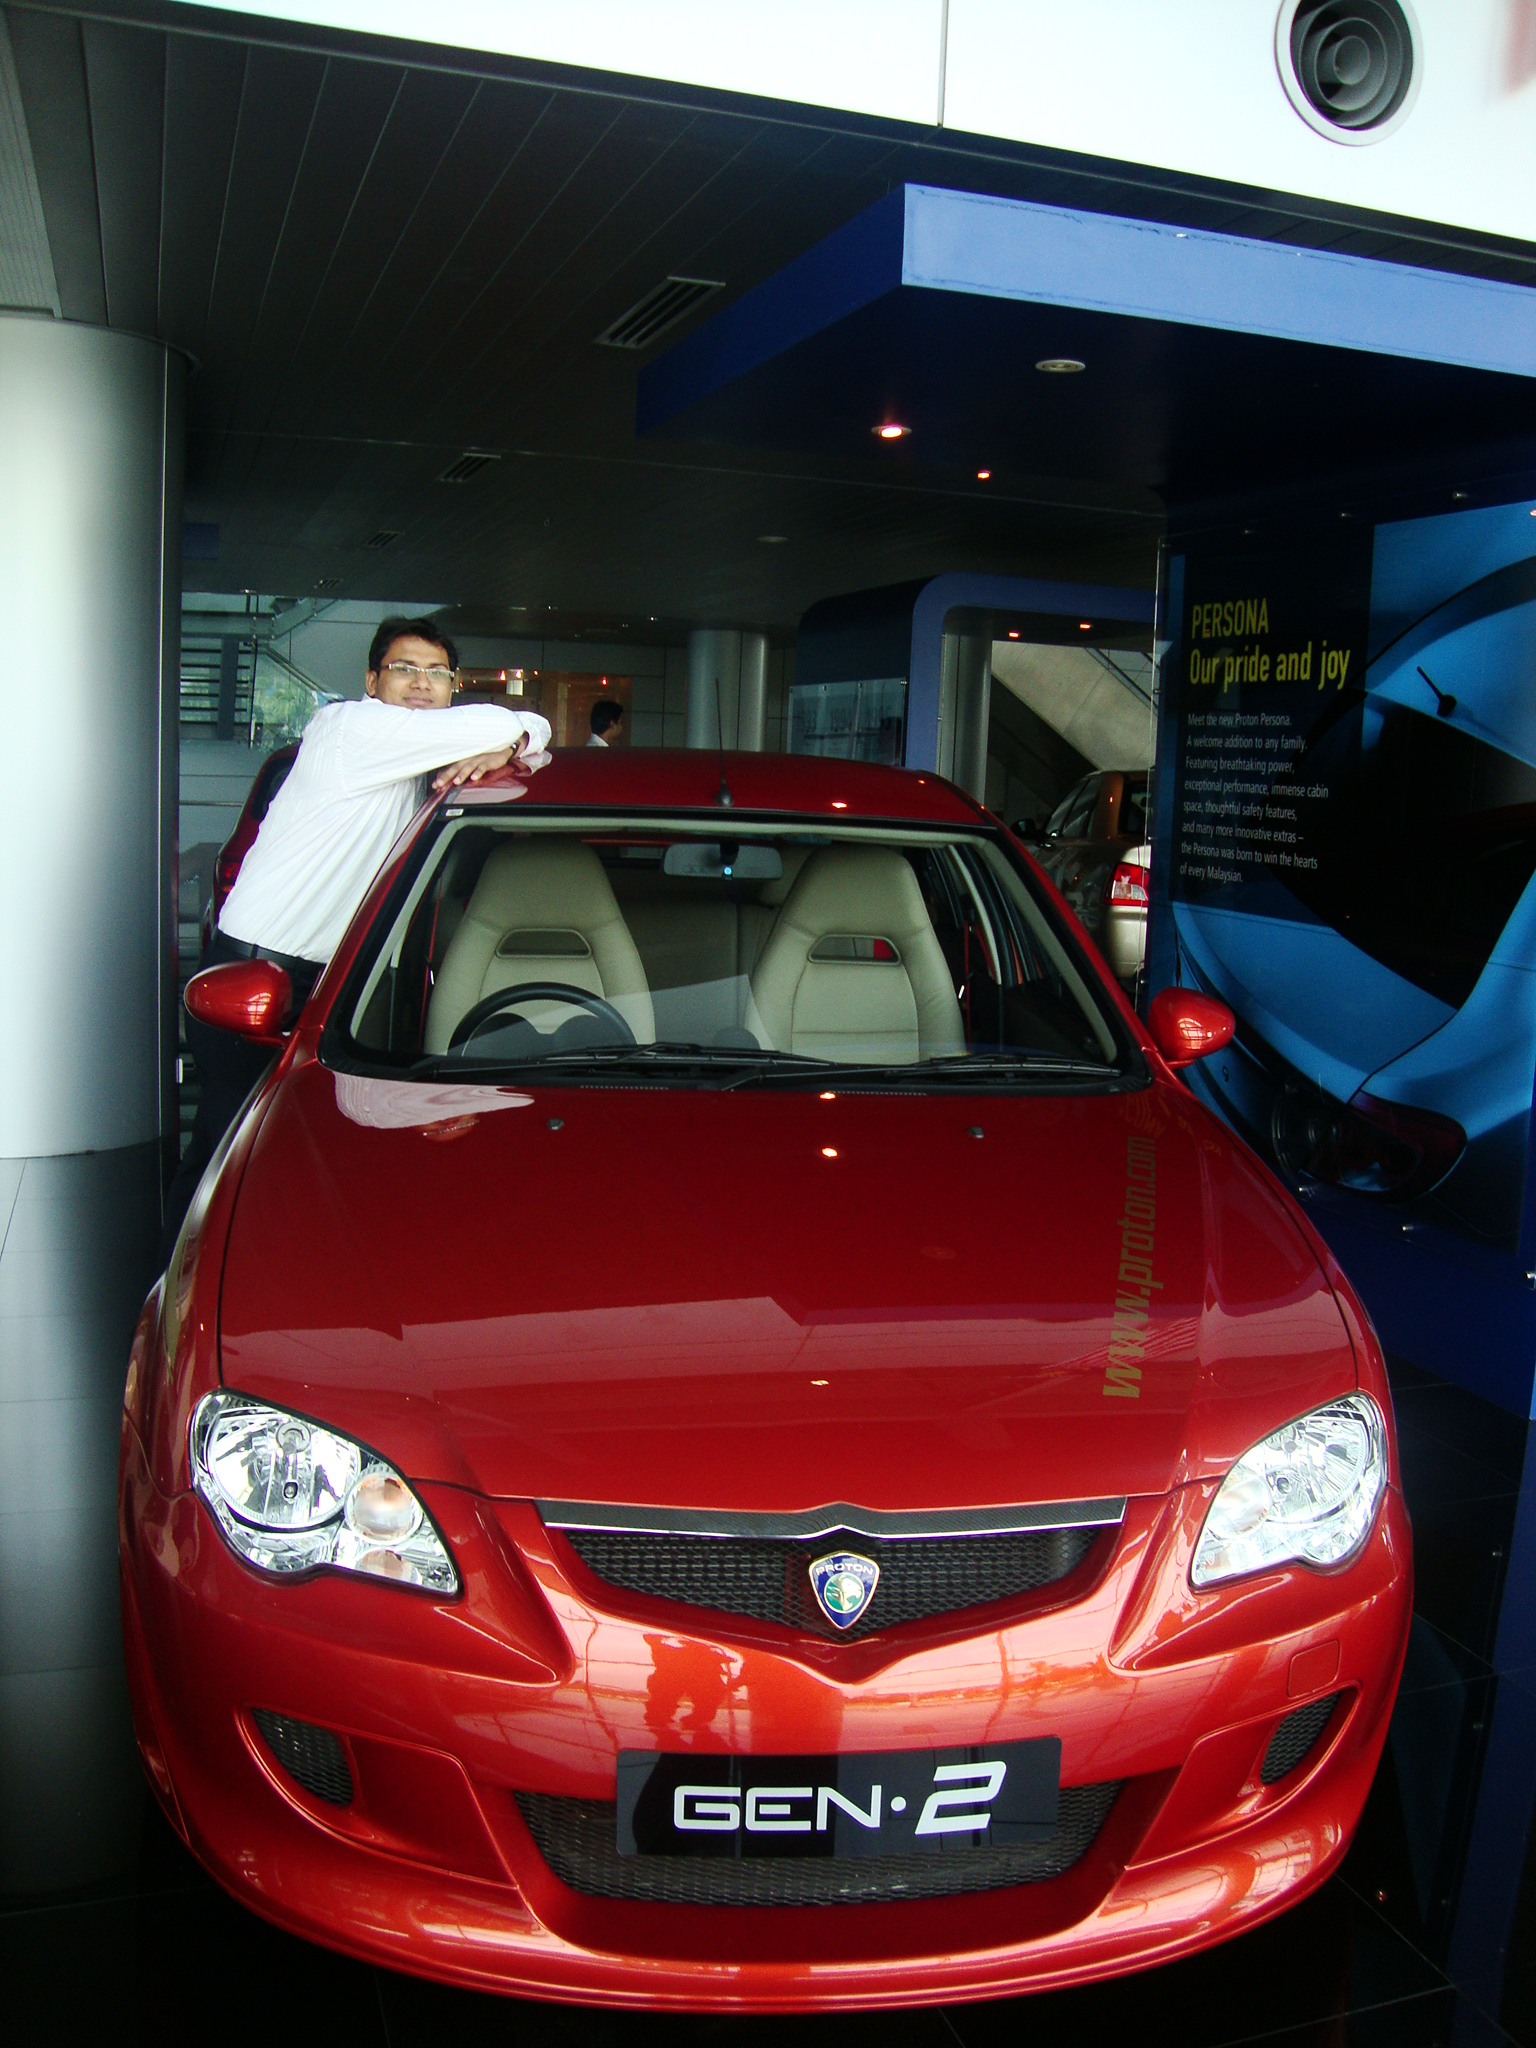 perodua marketing mix 2018-8-16 achieving a marketing objective requires a variety of integrated strategies, and promotional activity plays a vital part in that mix promotion is one of the so-called four p's of marketing, the others being product, price and place.